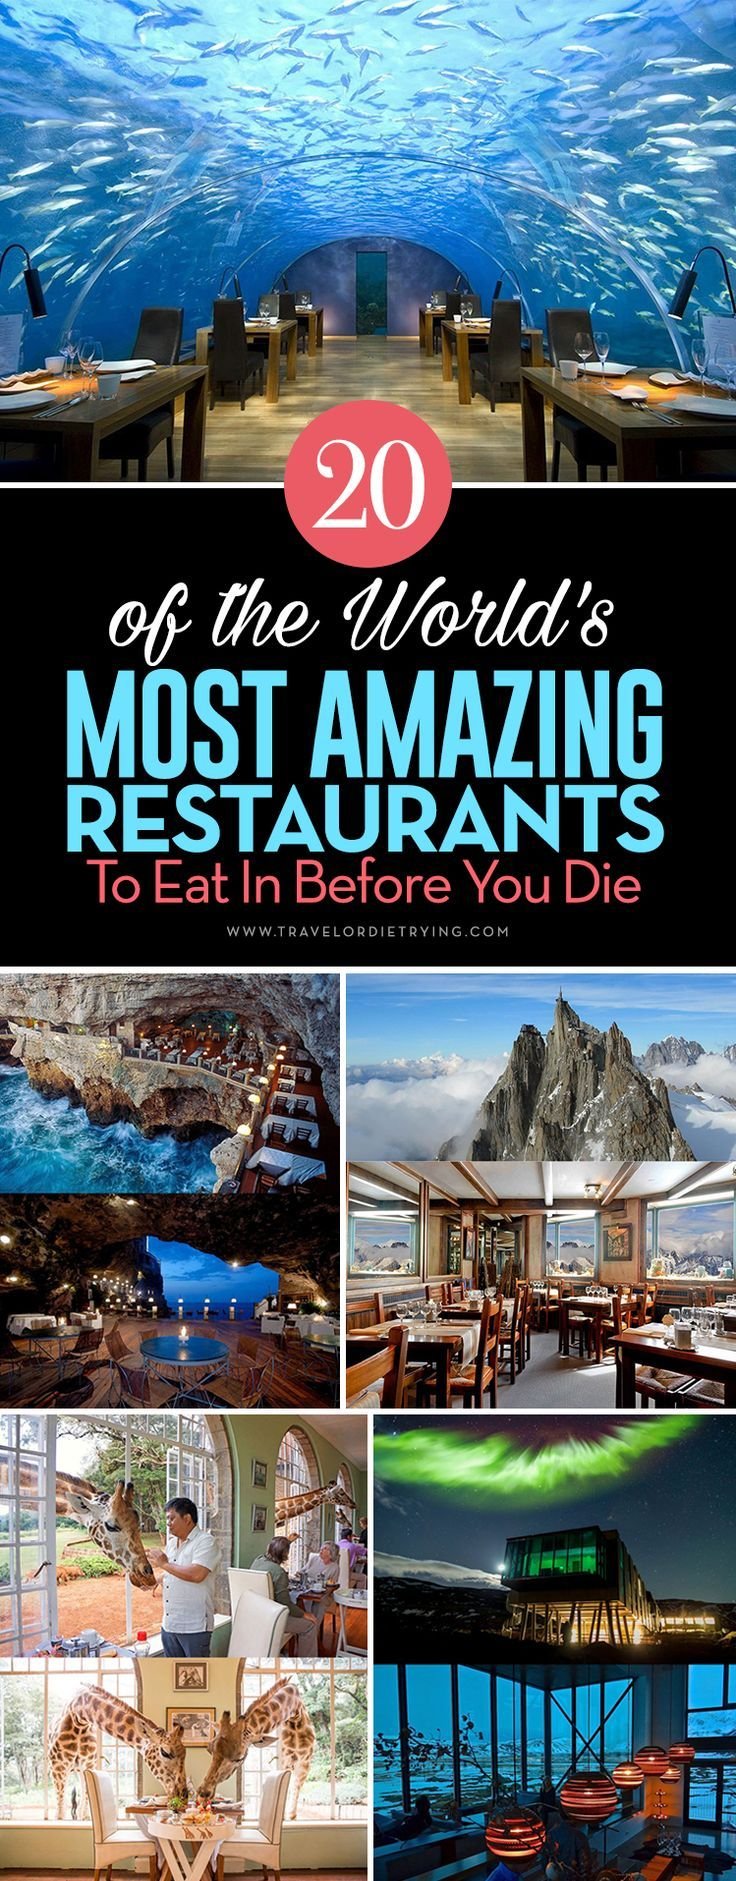 Best 261 Amazing World Restaurants ideas on Pinterest | American ...